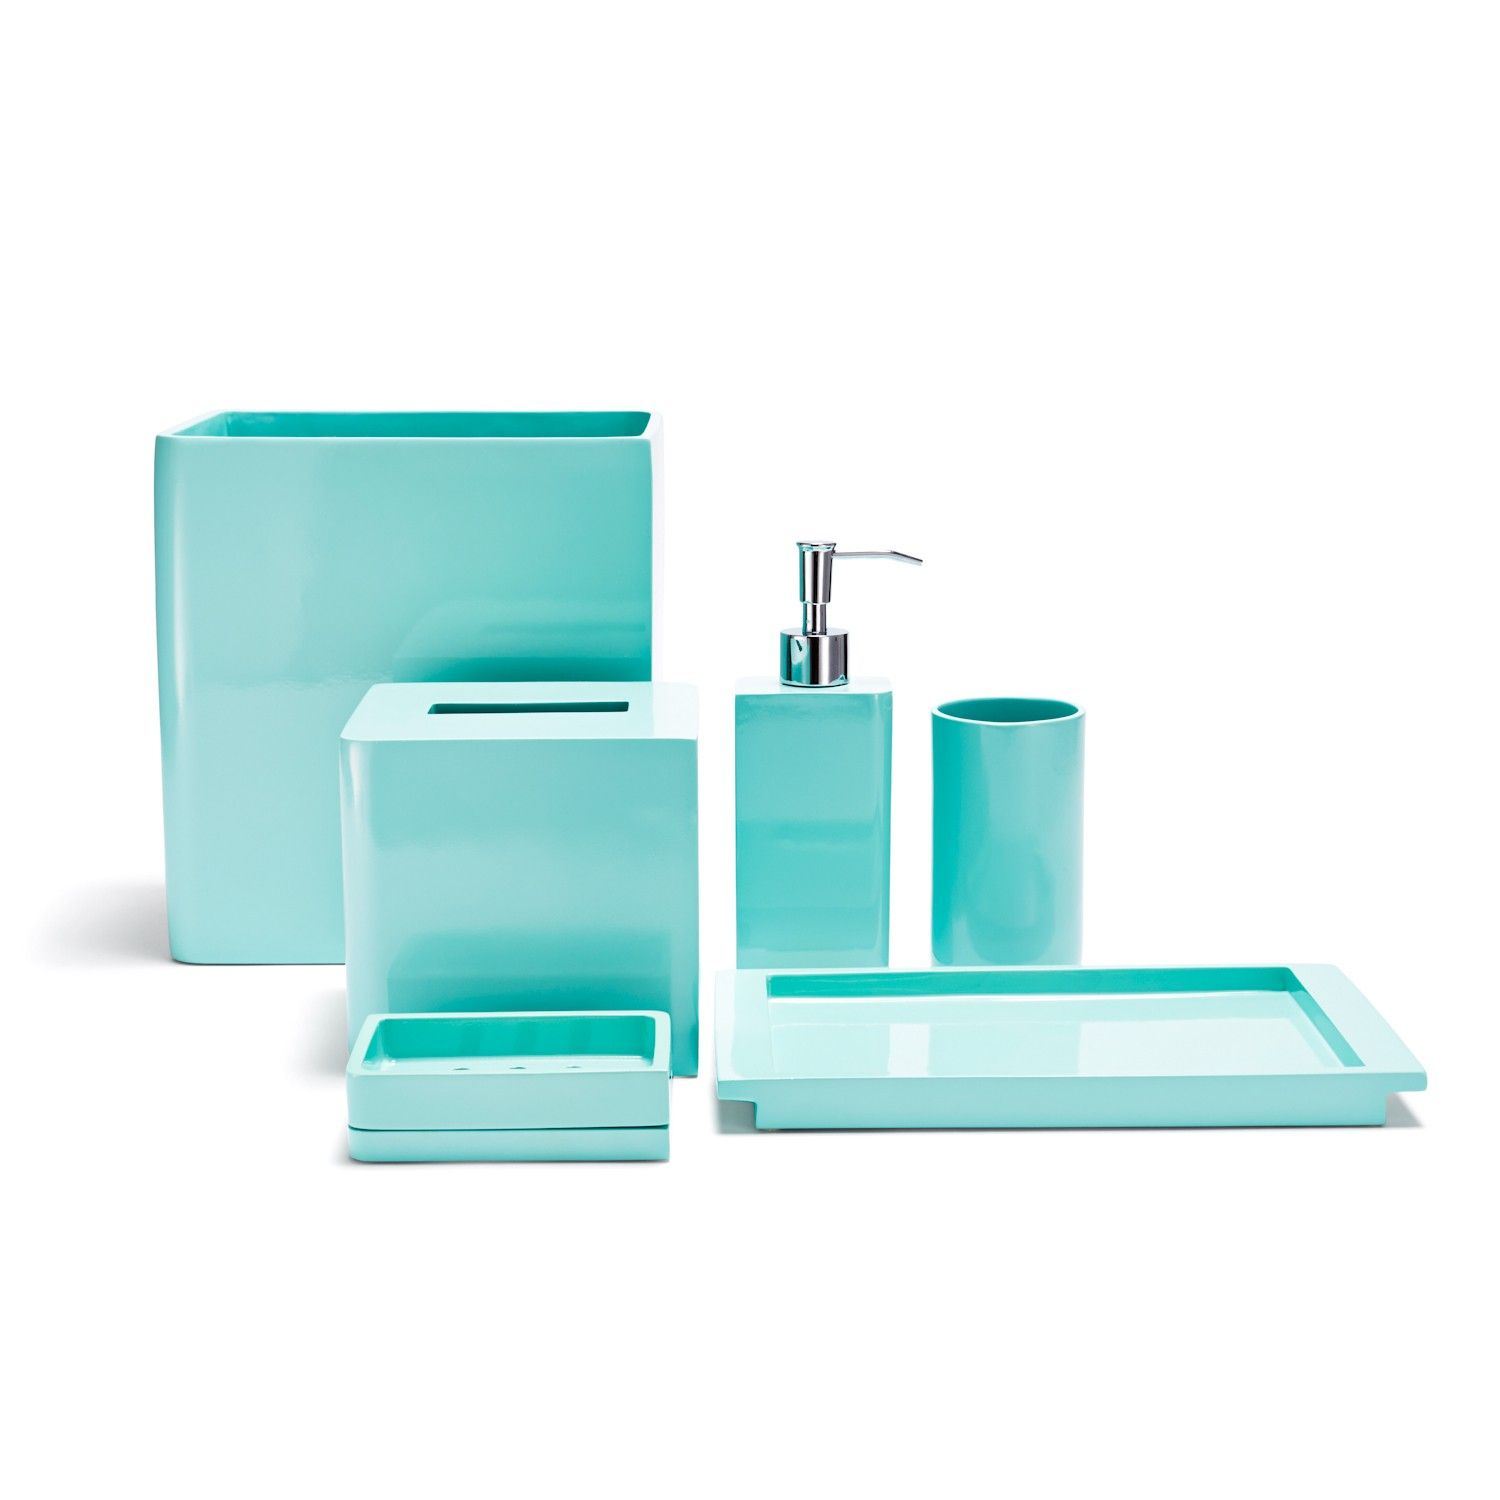 Fabulous Unique Turquoise Bathroom Accessories For Decoration pertaining to Fresh Light Blue Bathroom Accessories